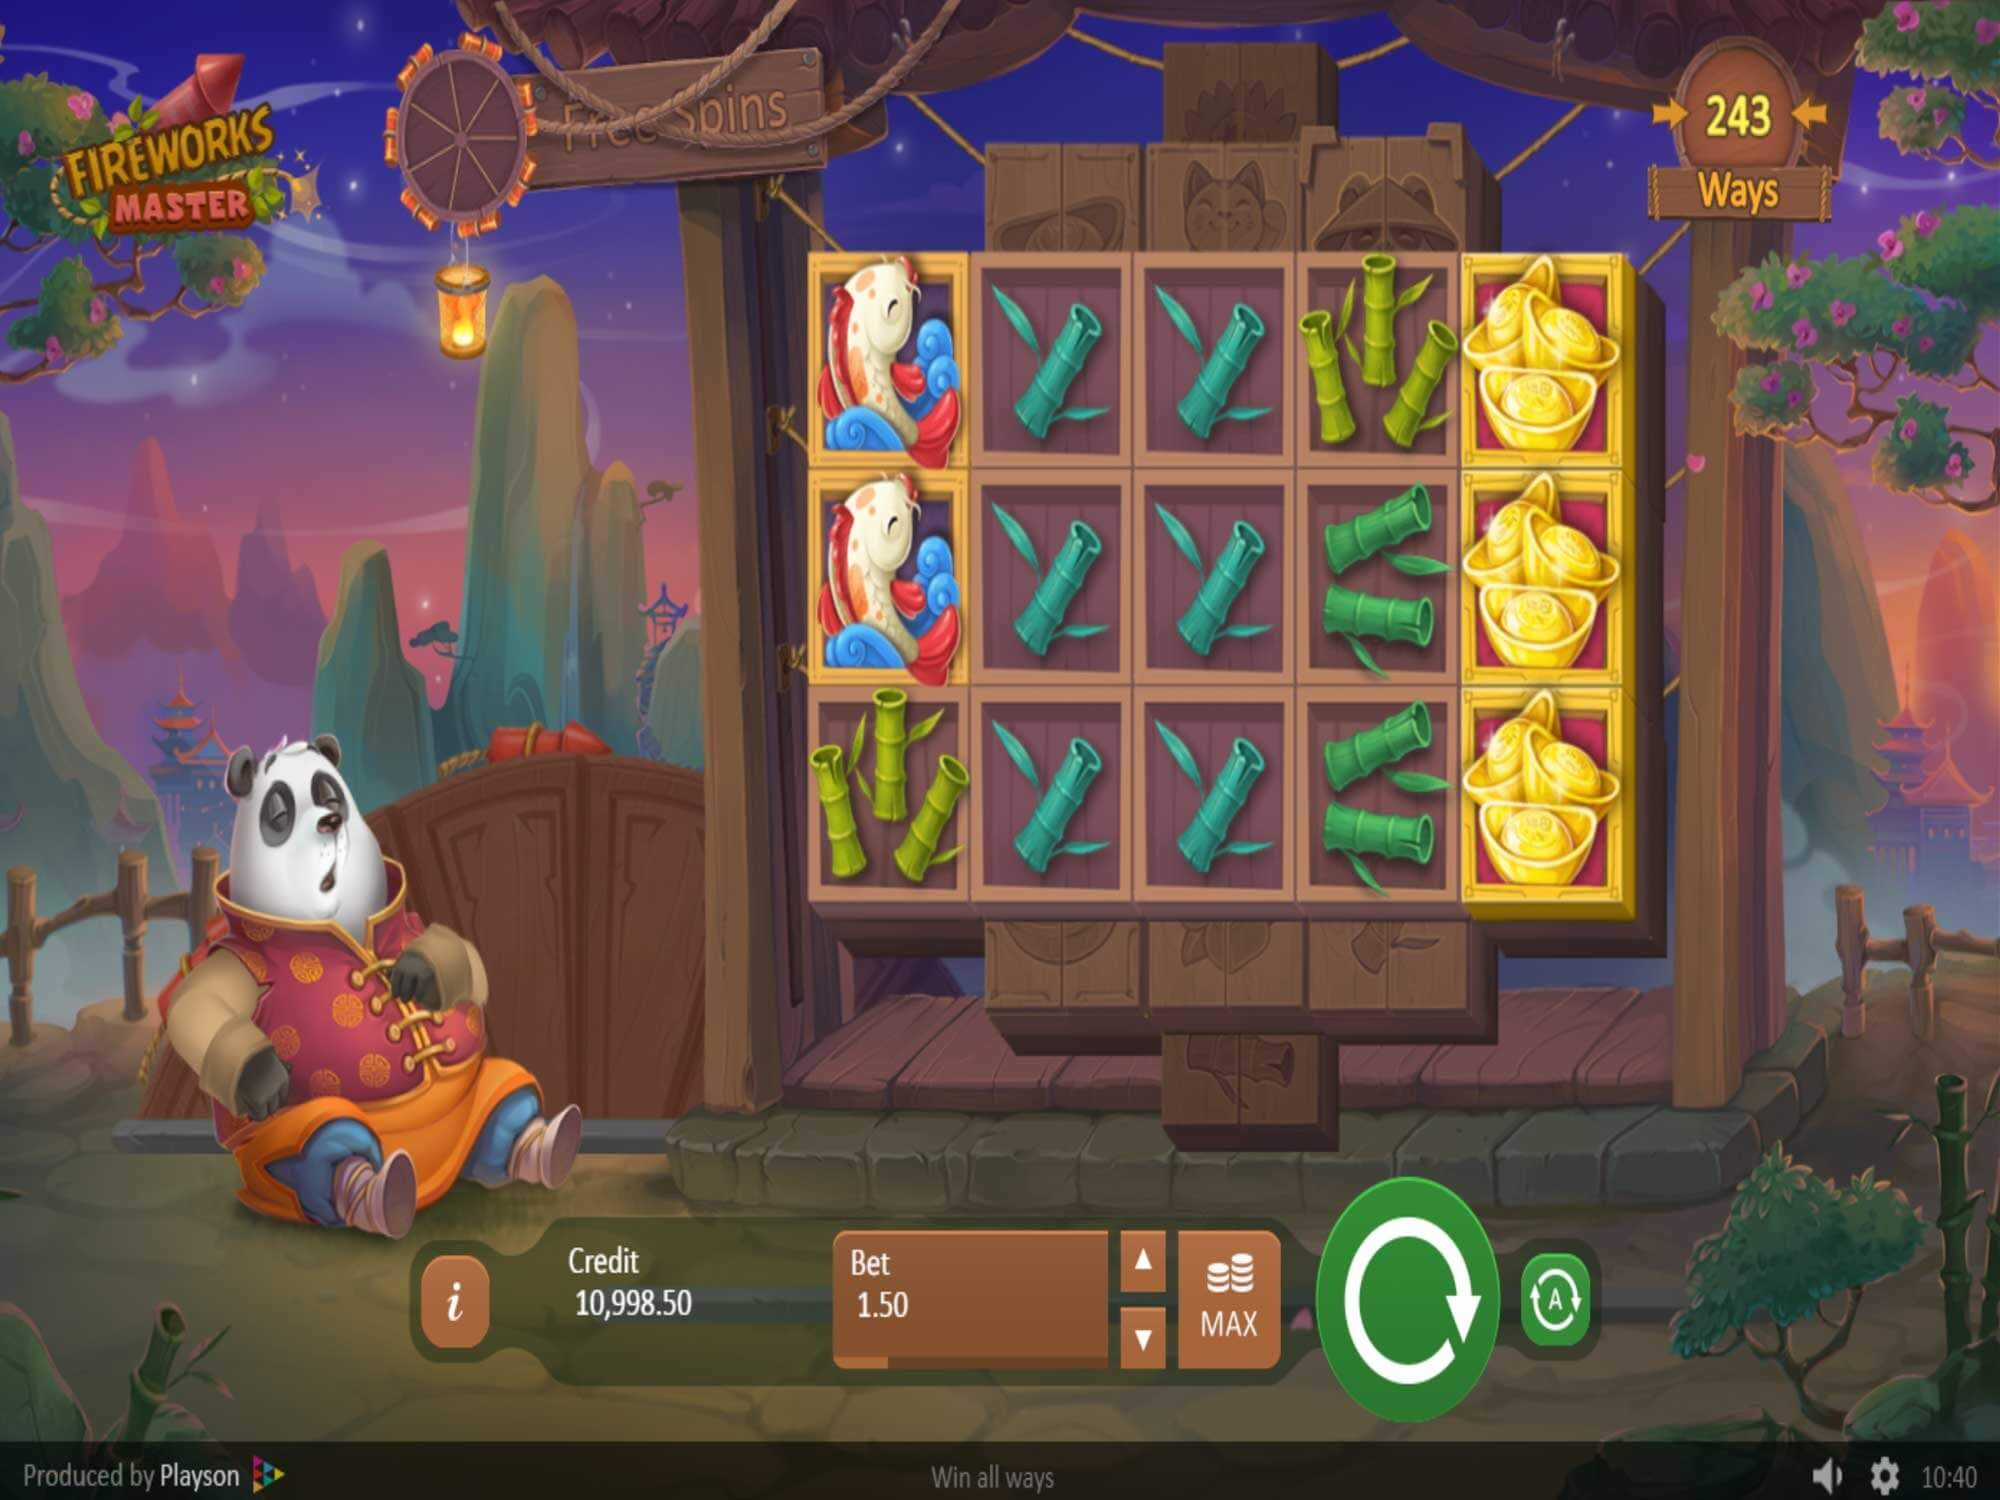 Fireworks Master Slot Gameplay